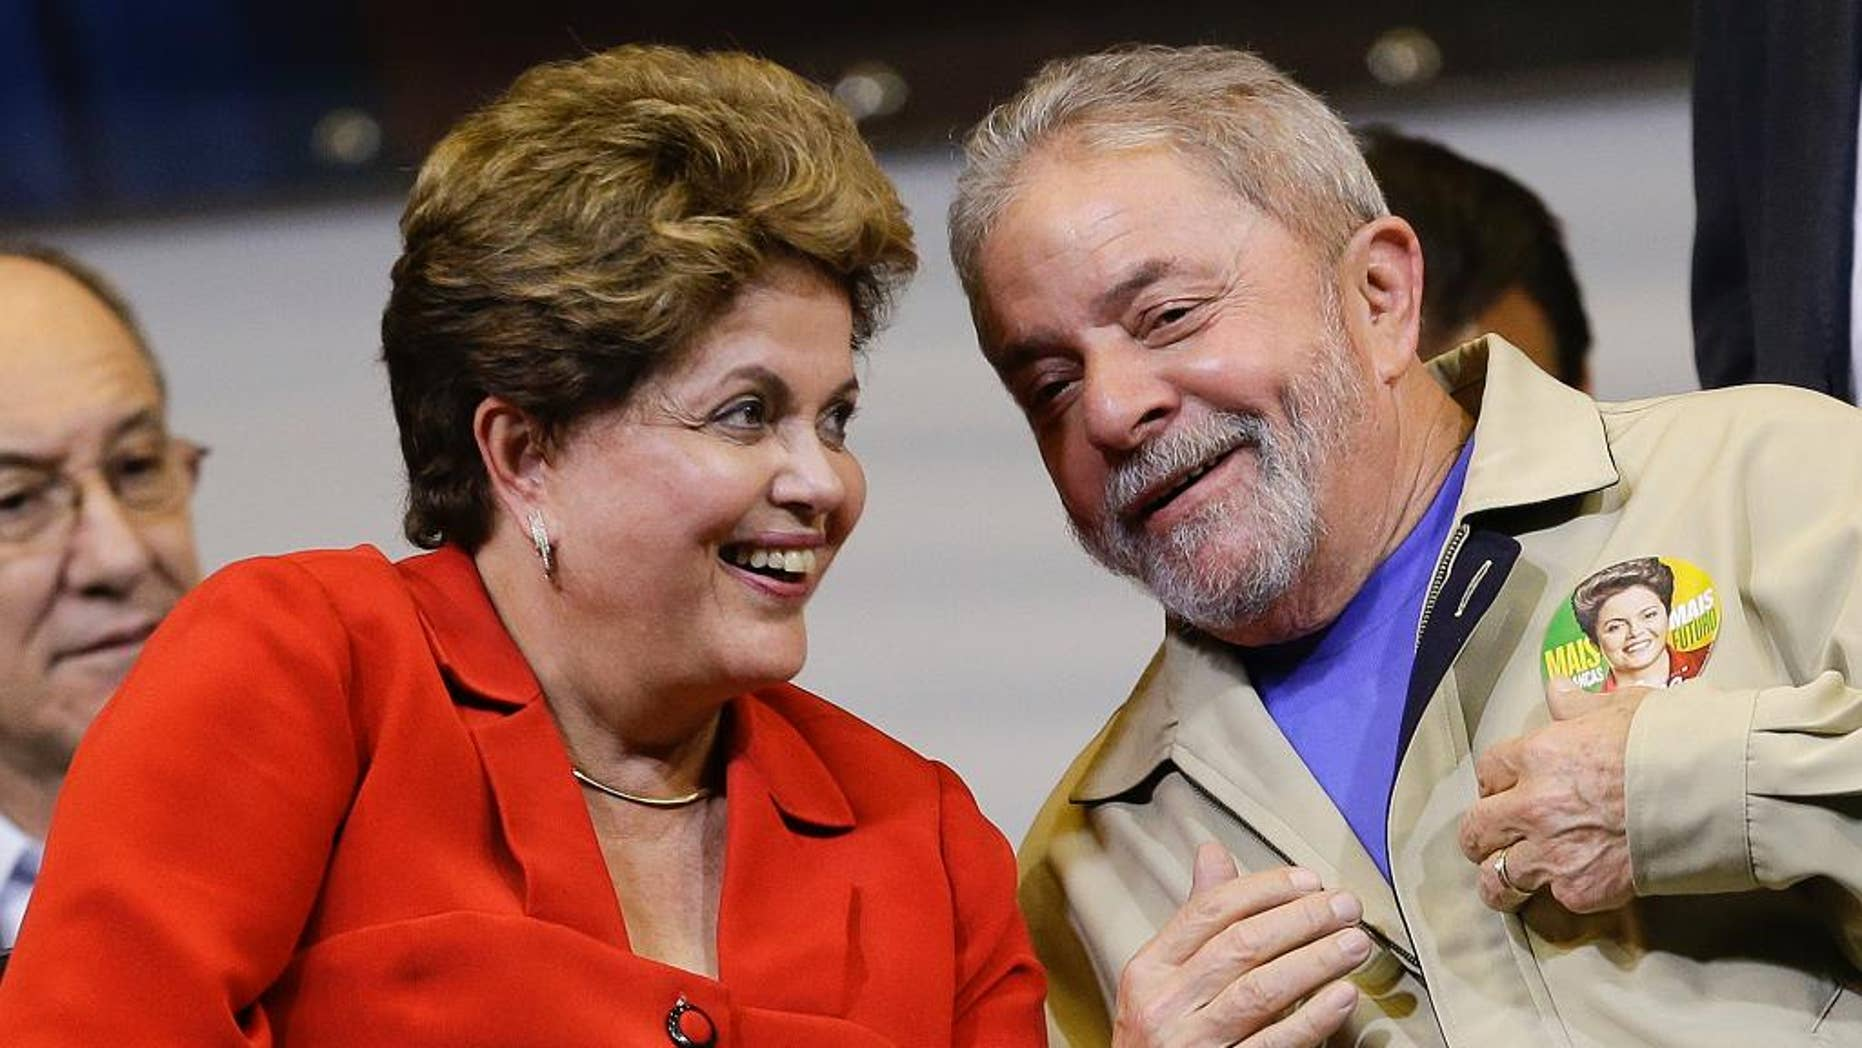 FILE - In this Aug. 7, 2014,file photo, Brazil's President Dilma Rousseff and former Brazilian President Luiz Ignacio Lula da Silva attend an election campaign rally in Sao Paulo, Brazil. A convicted black market money dealer who turned state's evidence told lawmakers on Tuesday, Aug. 25, 2015, that President Rousseff and her predecessor, former President Lula da Silva, knew of the sprawling corruption kickback scheme that has engulfed state-run oil company Petrobras. (AP Photo/Andre Penner,File)